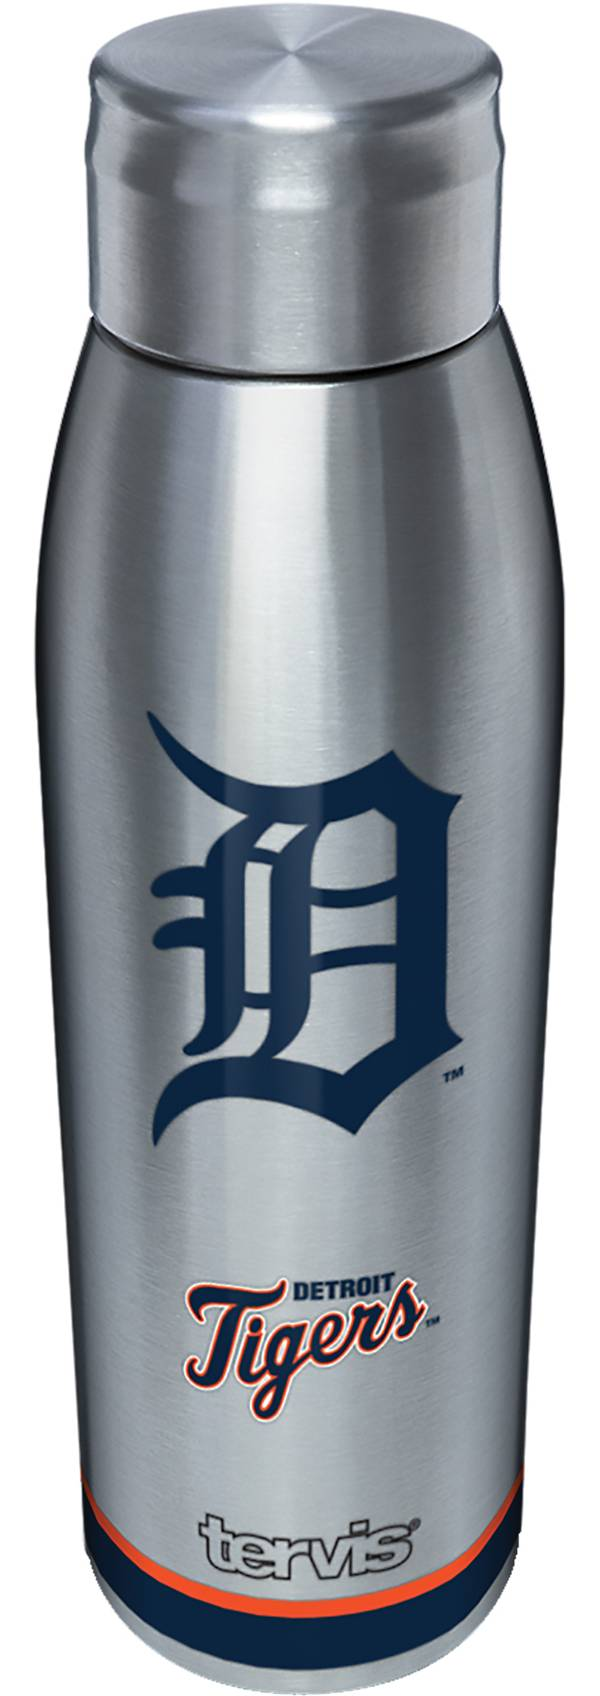 Tervis Detroit Tigers 17oz. Water Bottle product image